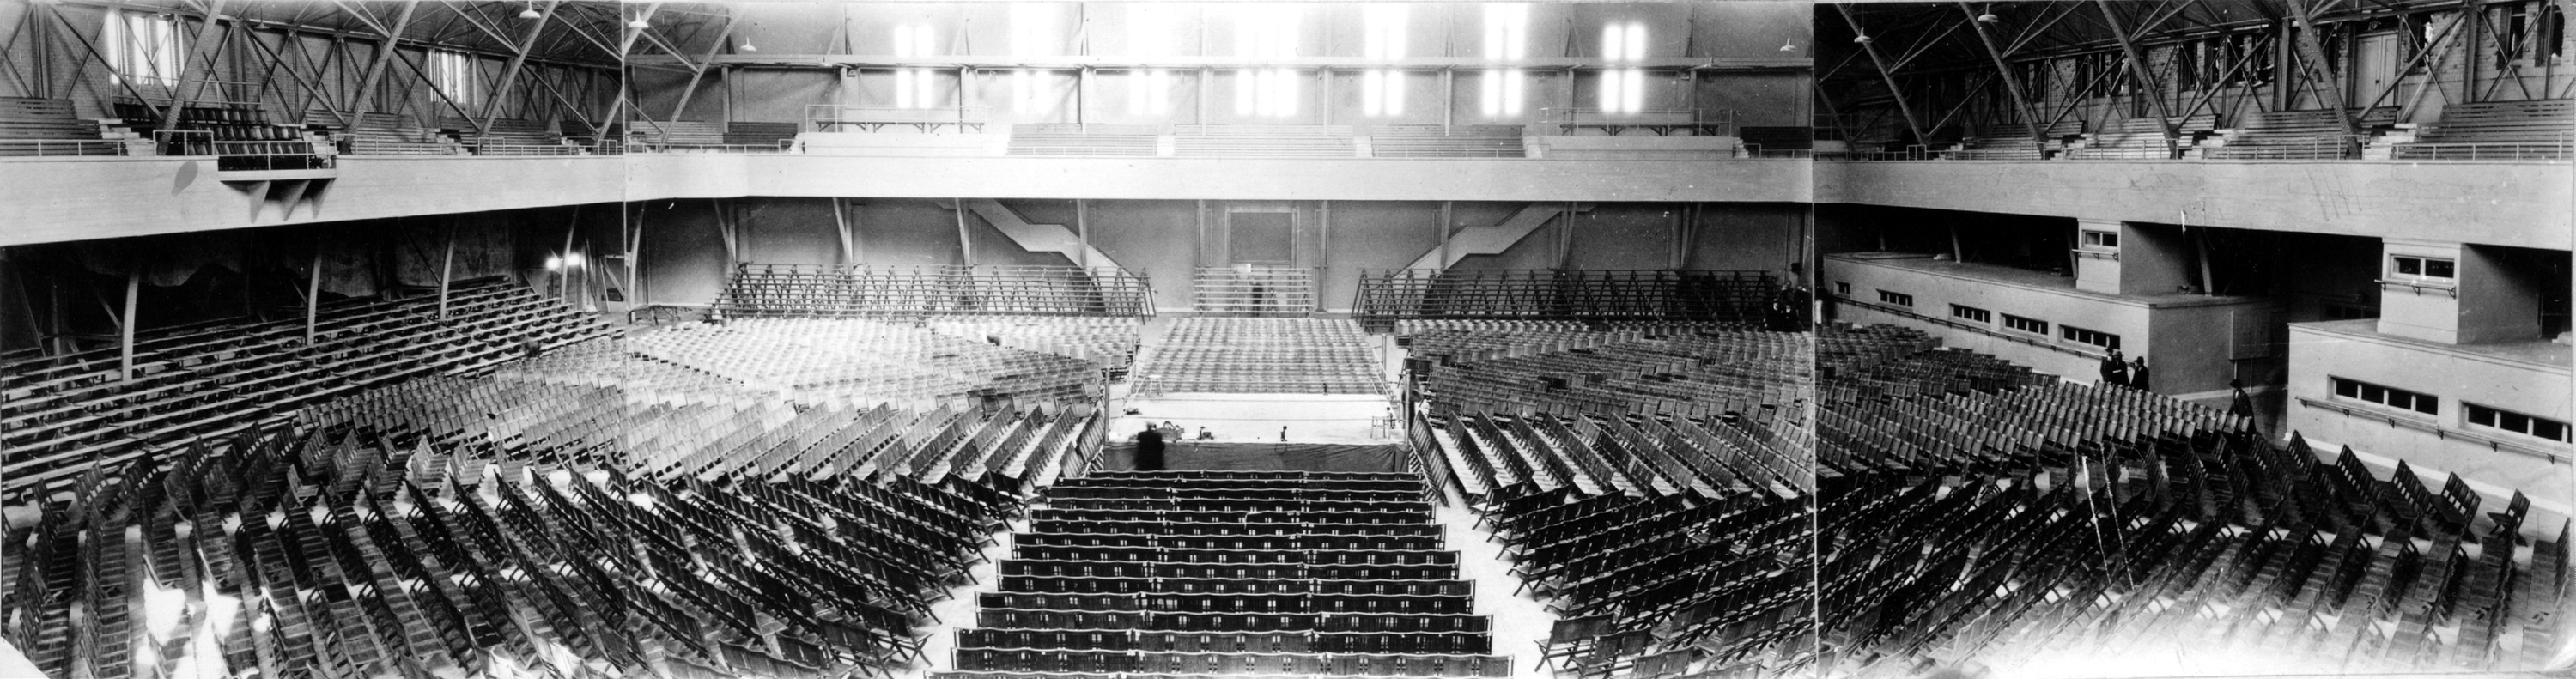 SF Armory Boxing Ring